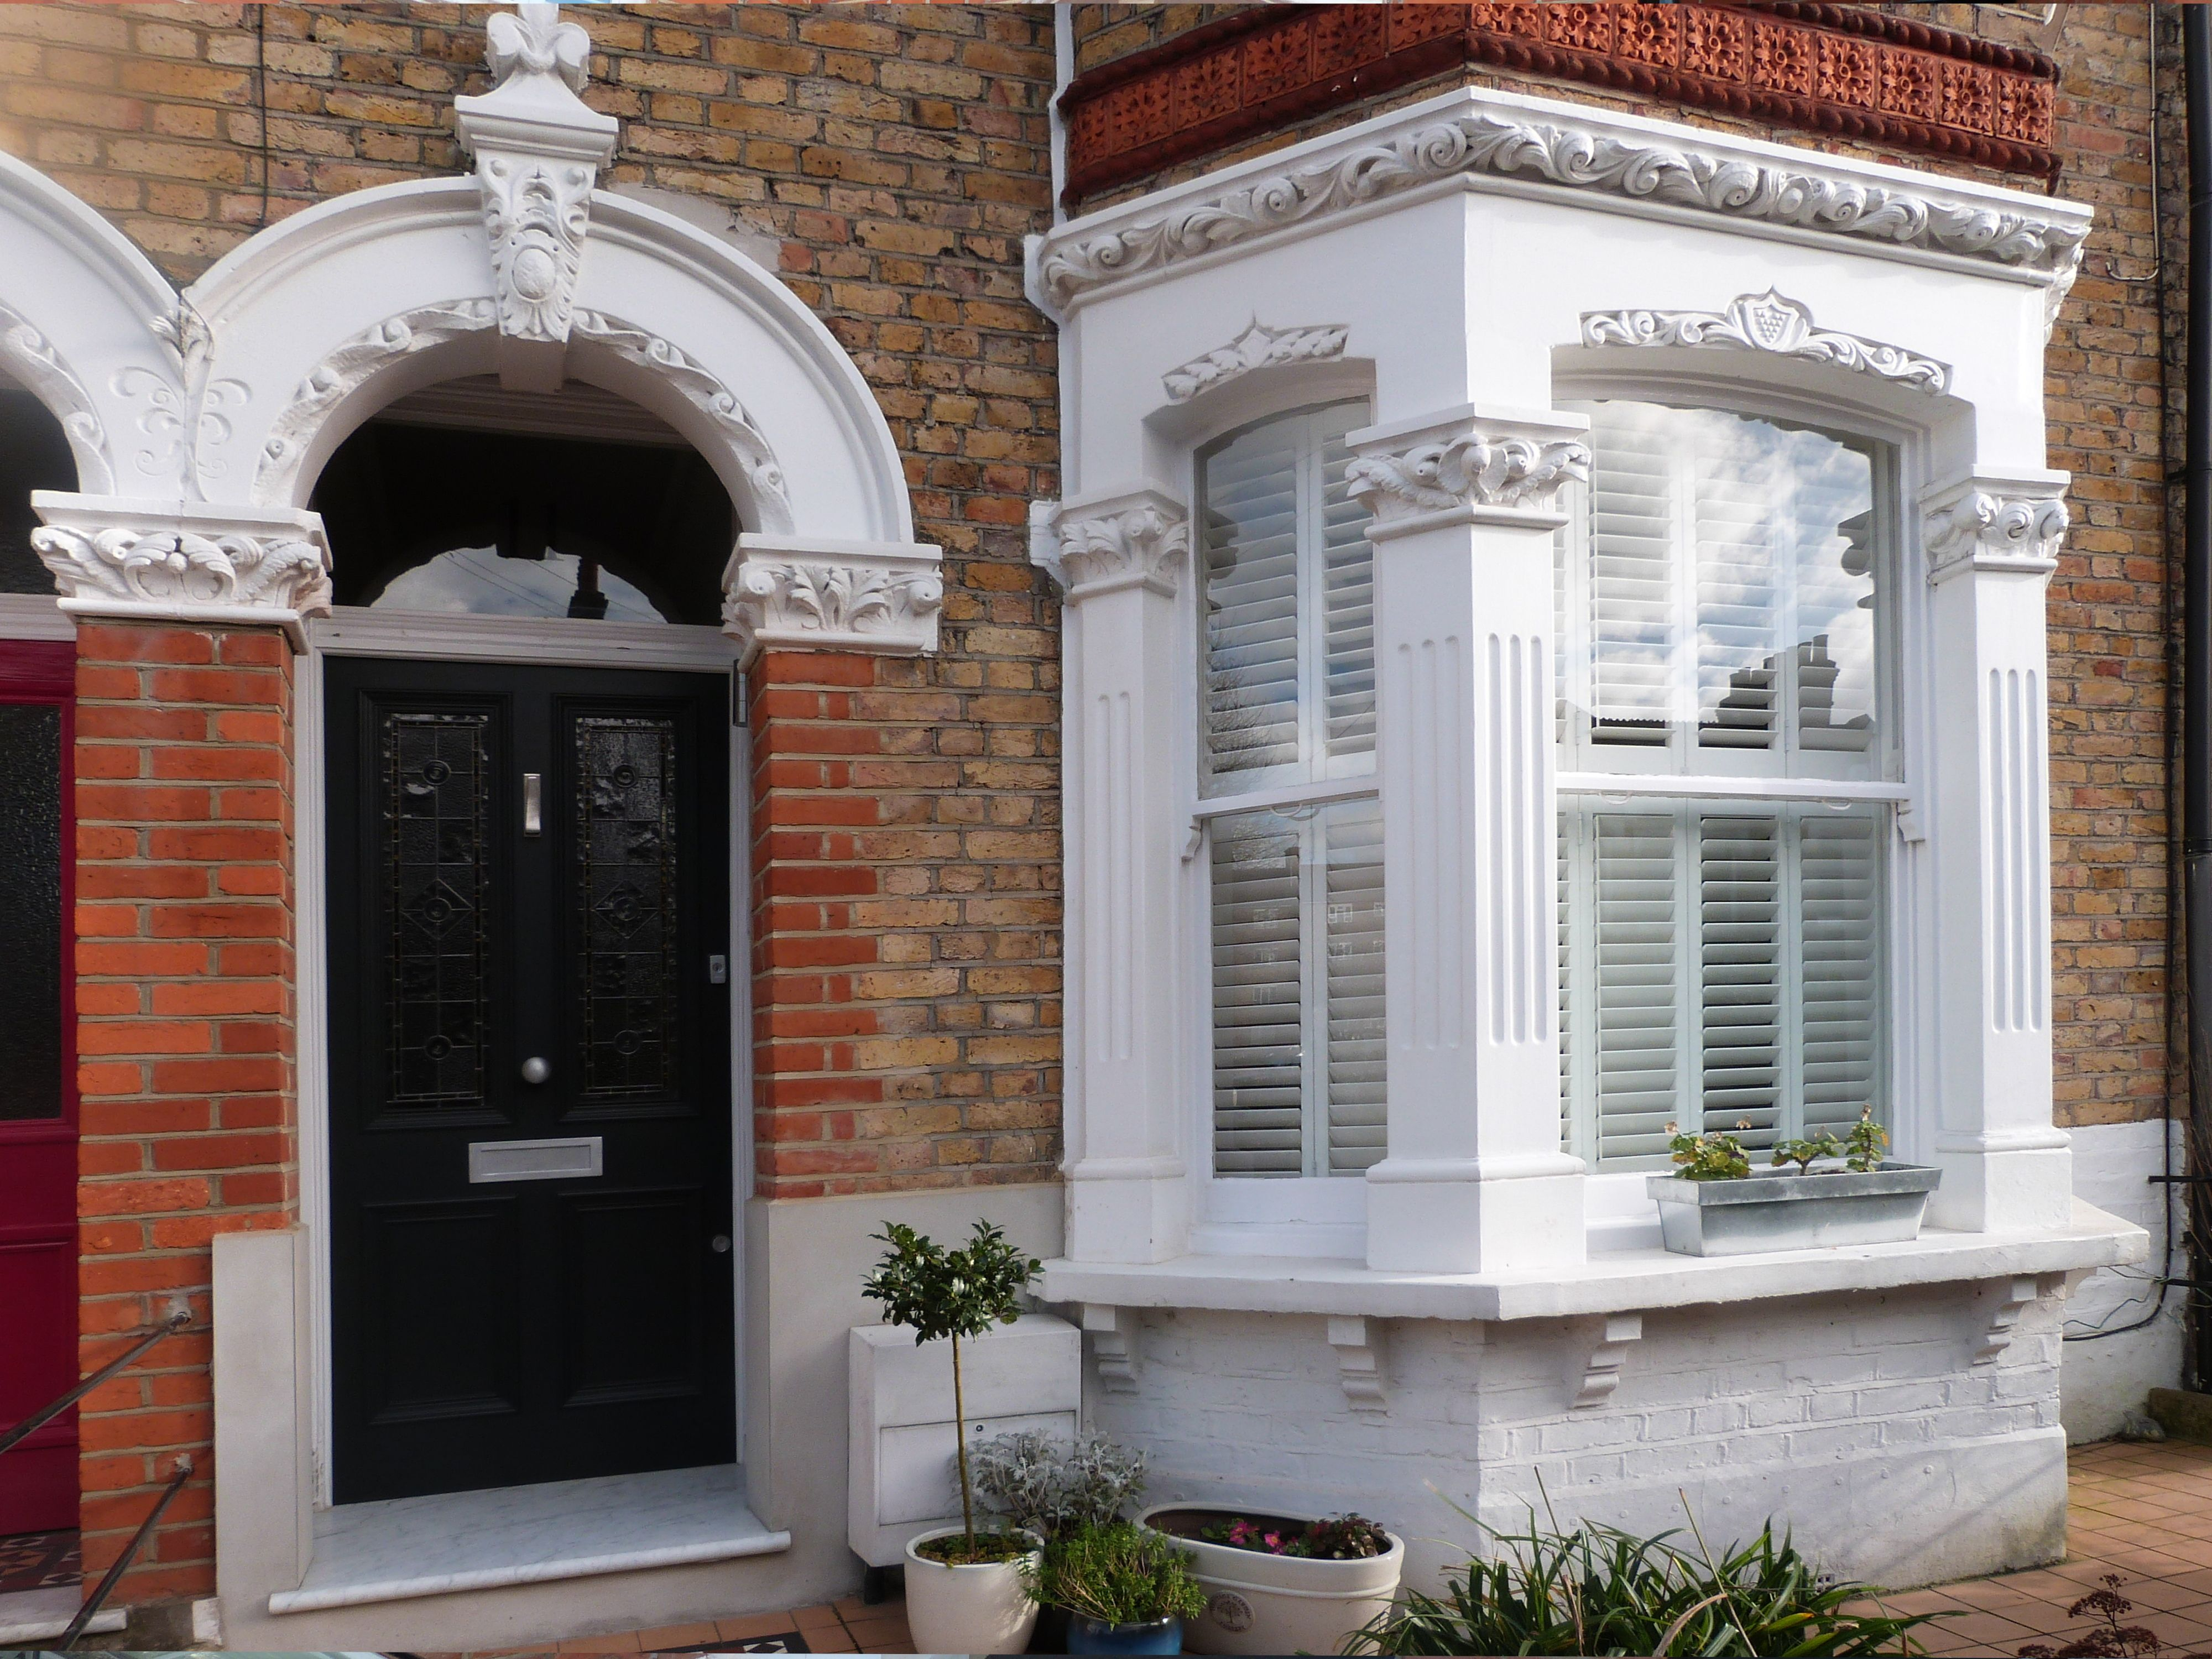 Amazing Victorian front door with black lead light fitted in south London & Amazing Victorian front door with black lead light fitted in south ... pezcame.com